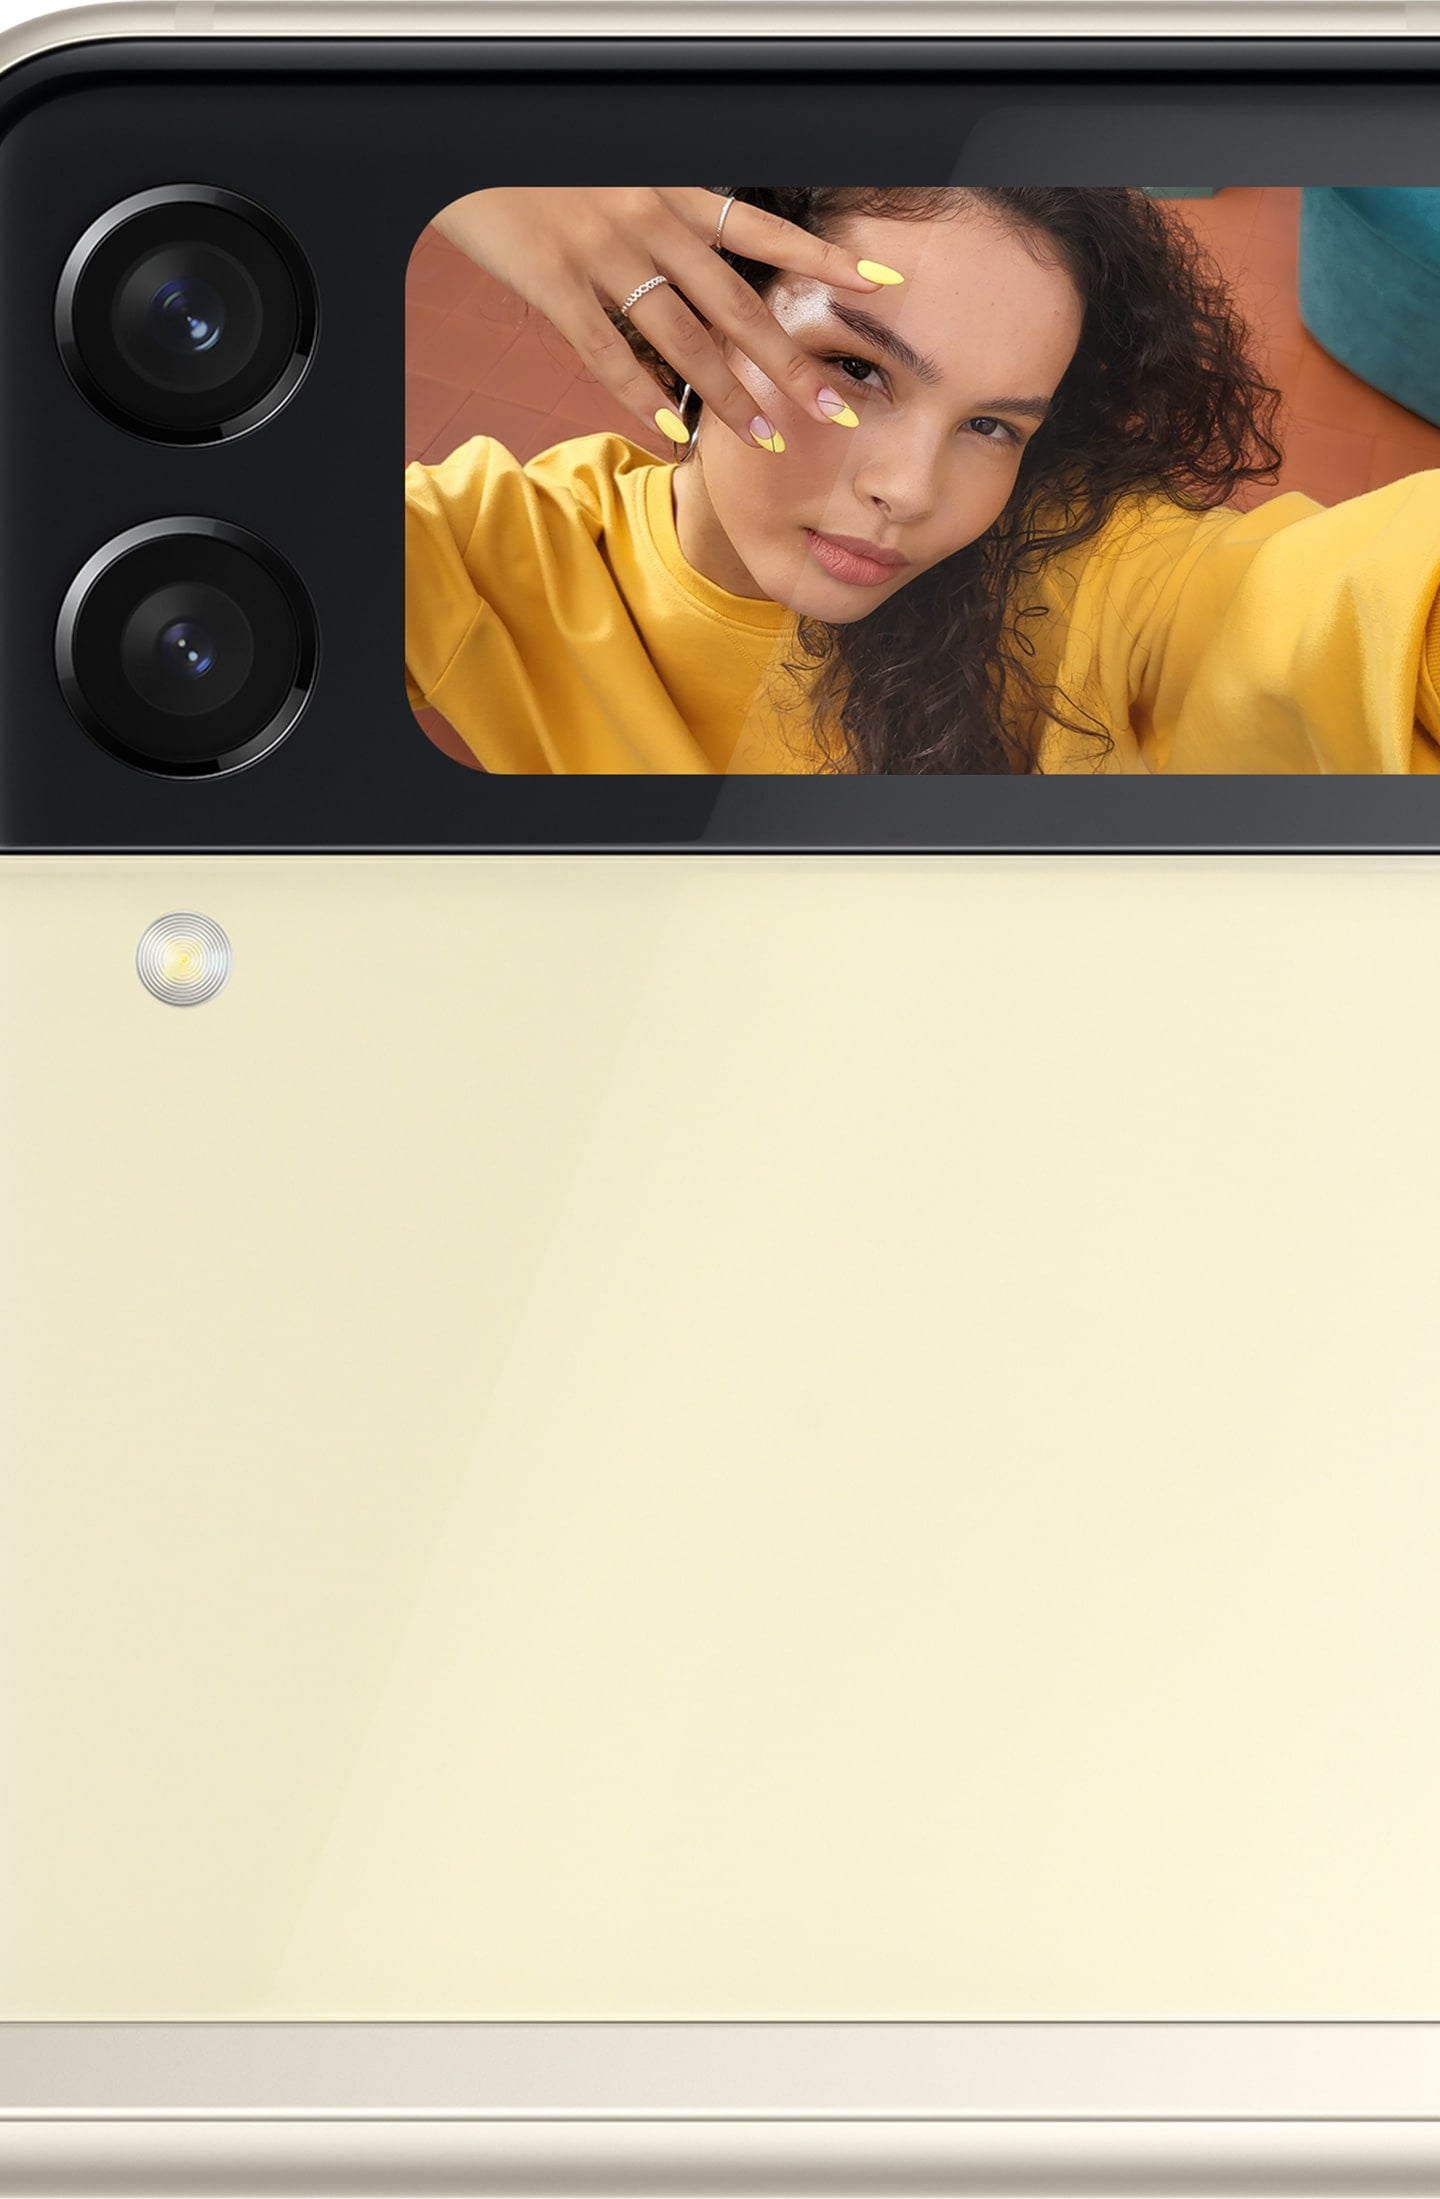 The Front Cover of Galaxy Z Flip3 5G with a woman taking a selfie shown in the Cover Screen.